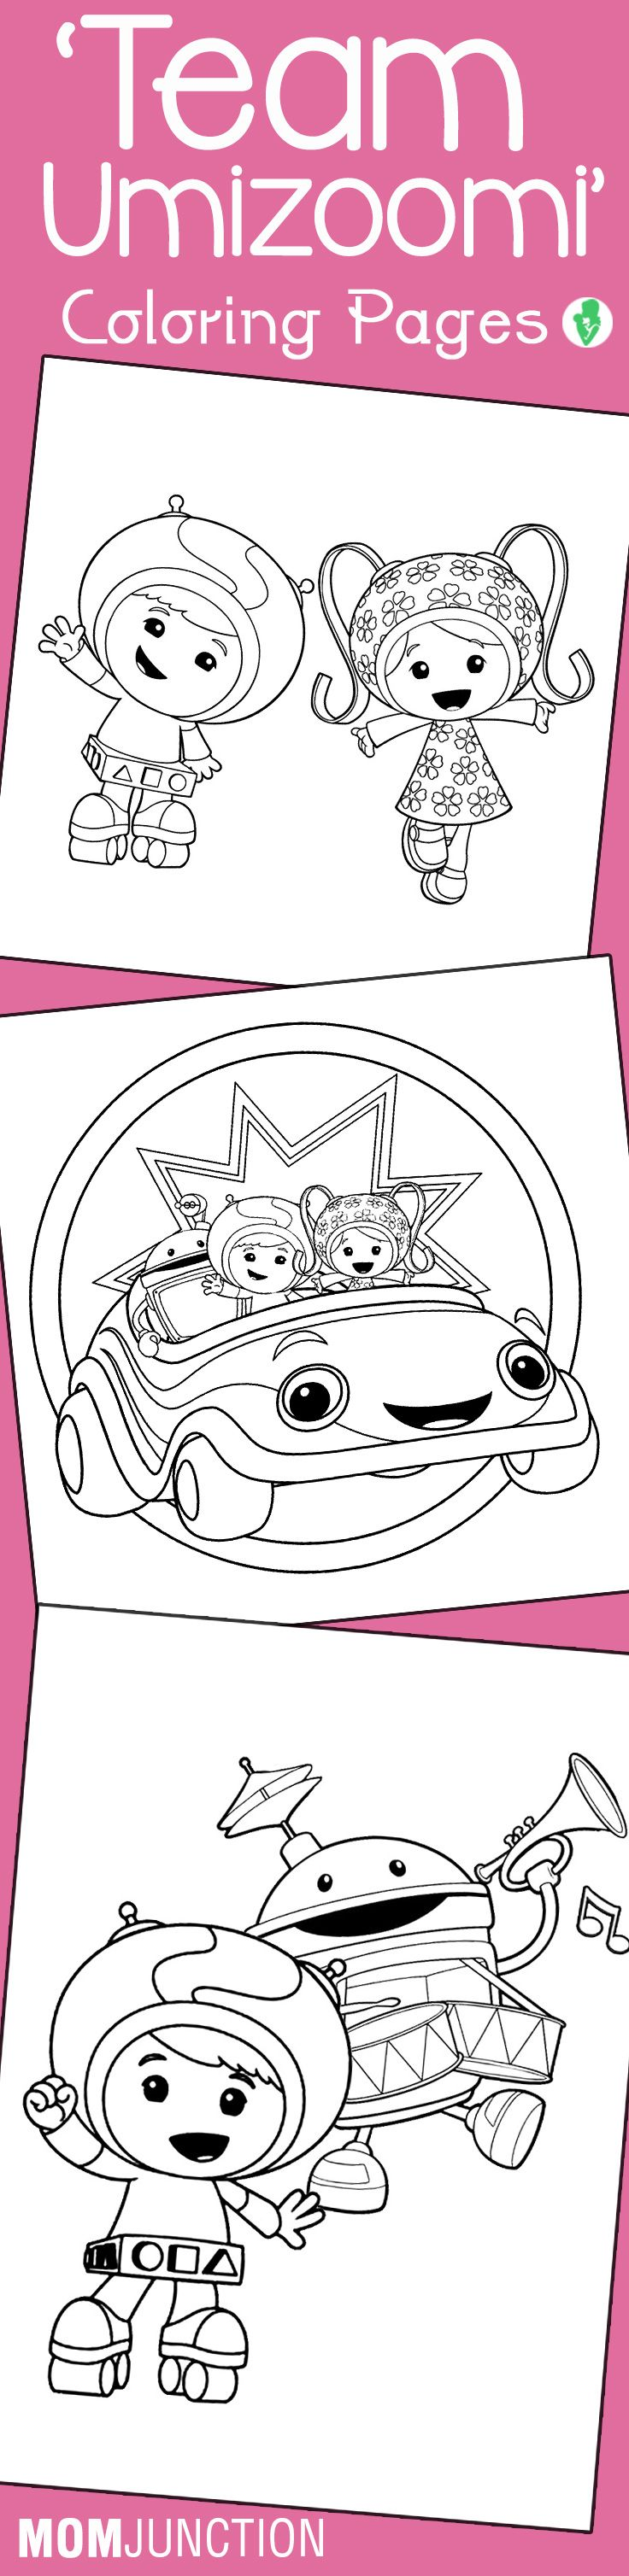 10 Best \'Team Umizoomi\' Coloring Pages For Your Toddler | Pinterest ...